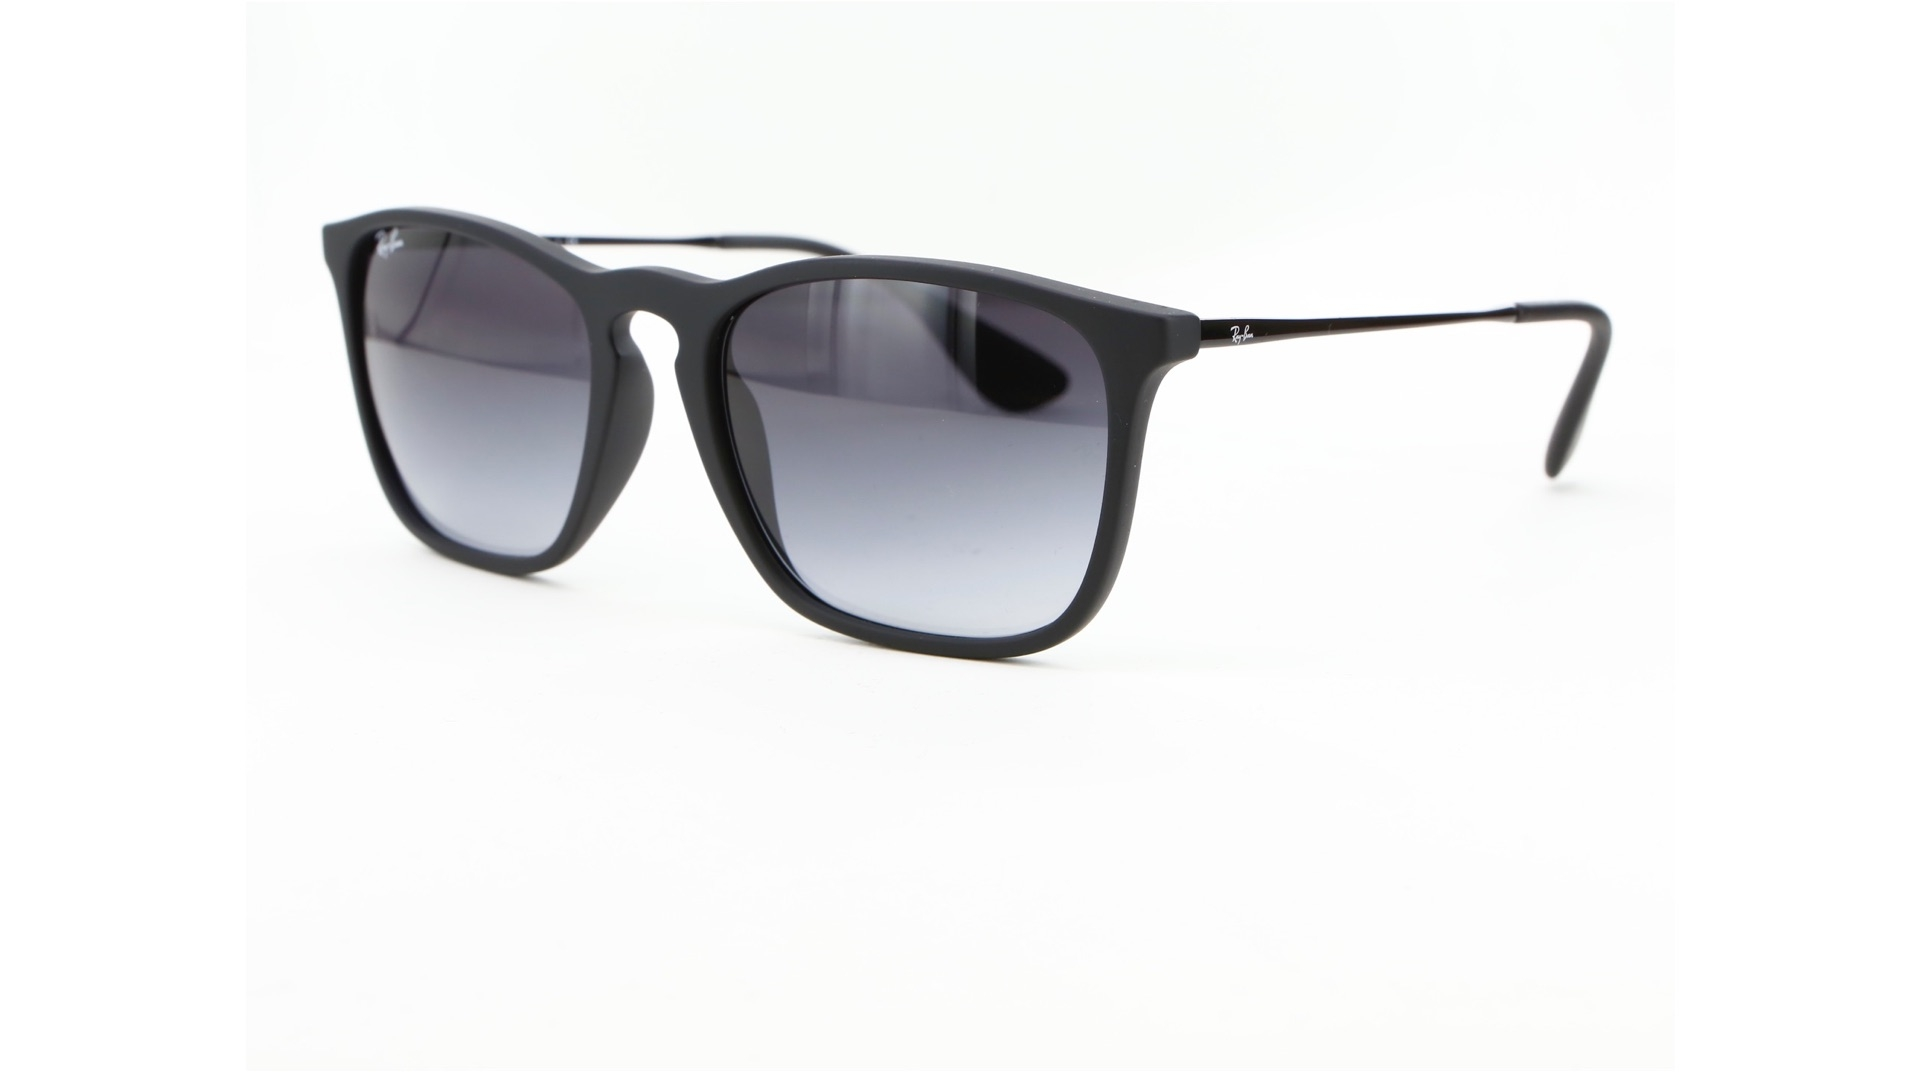 Ray-Ban - ref: 68401